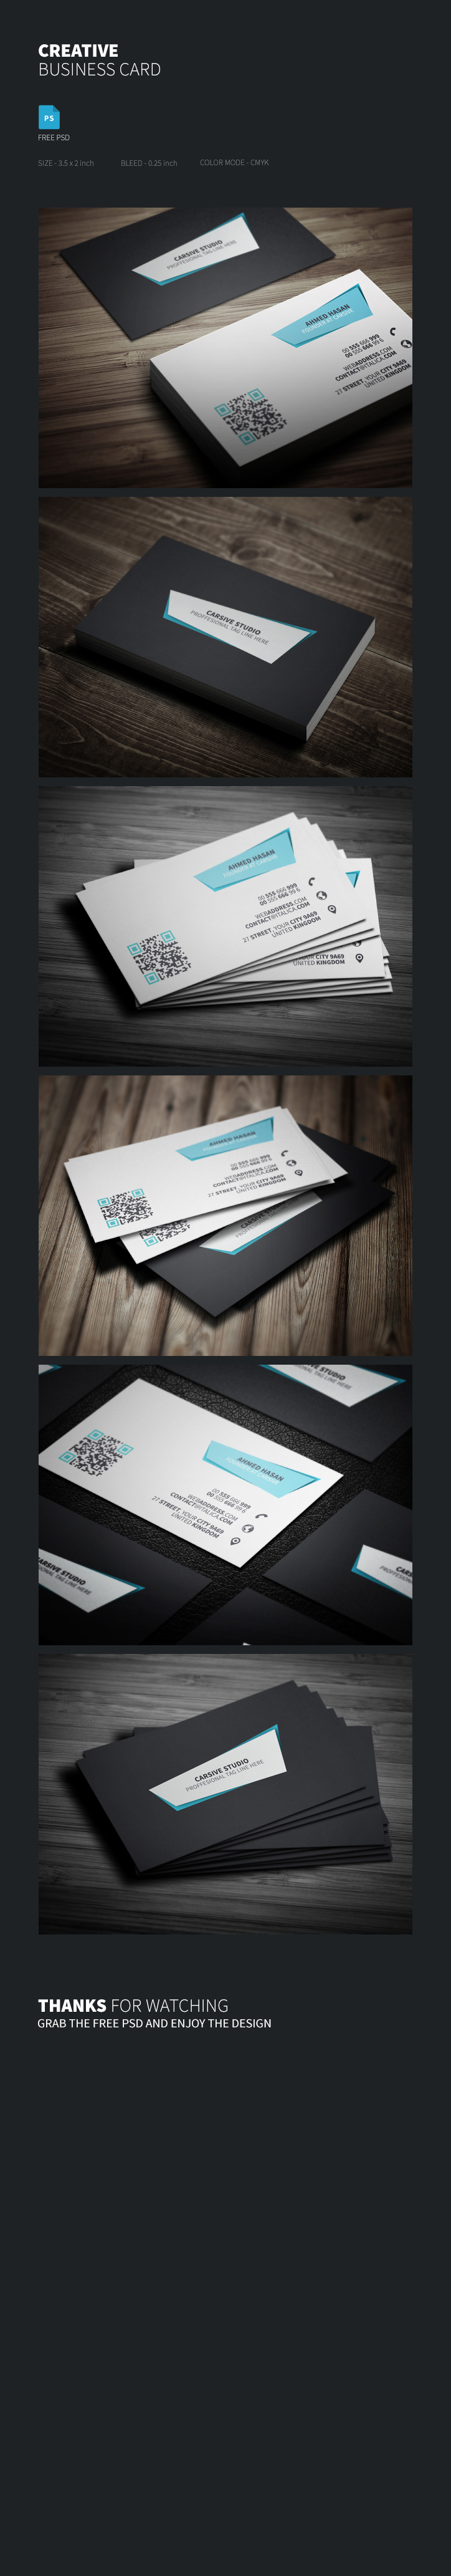 Freebie Creative Business Card Template